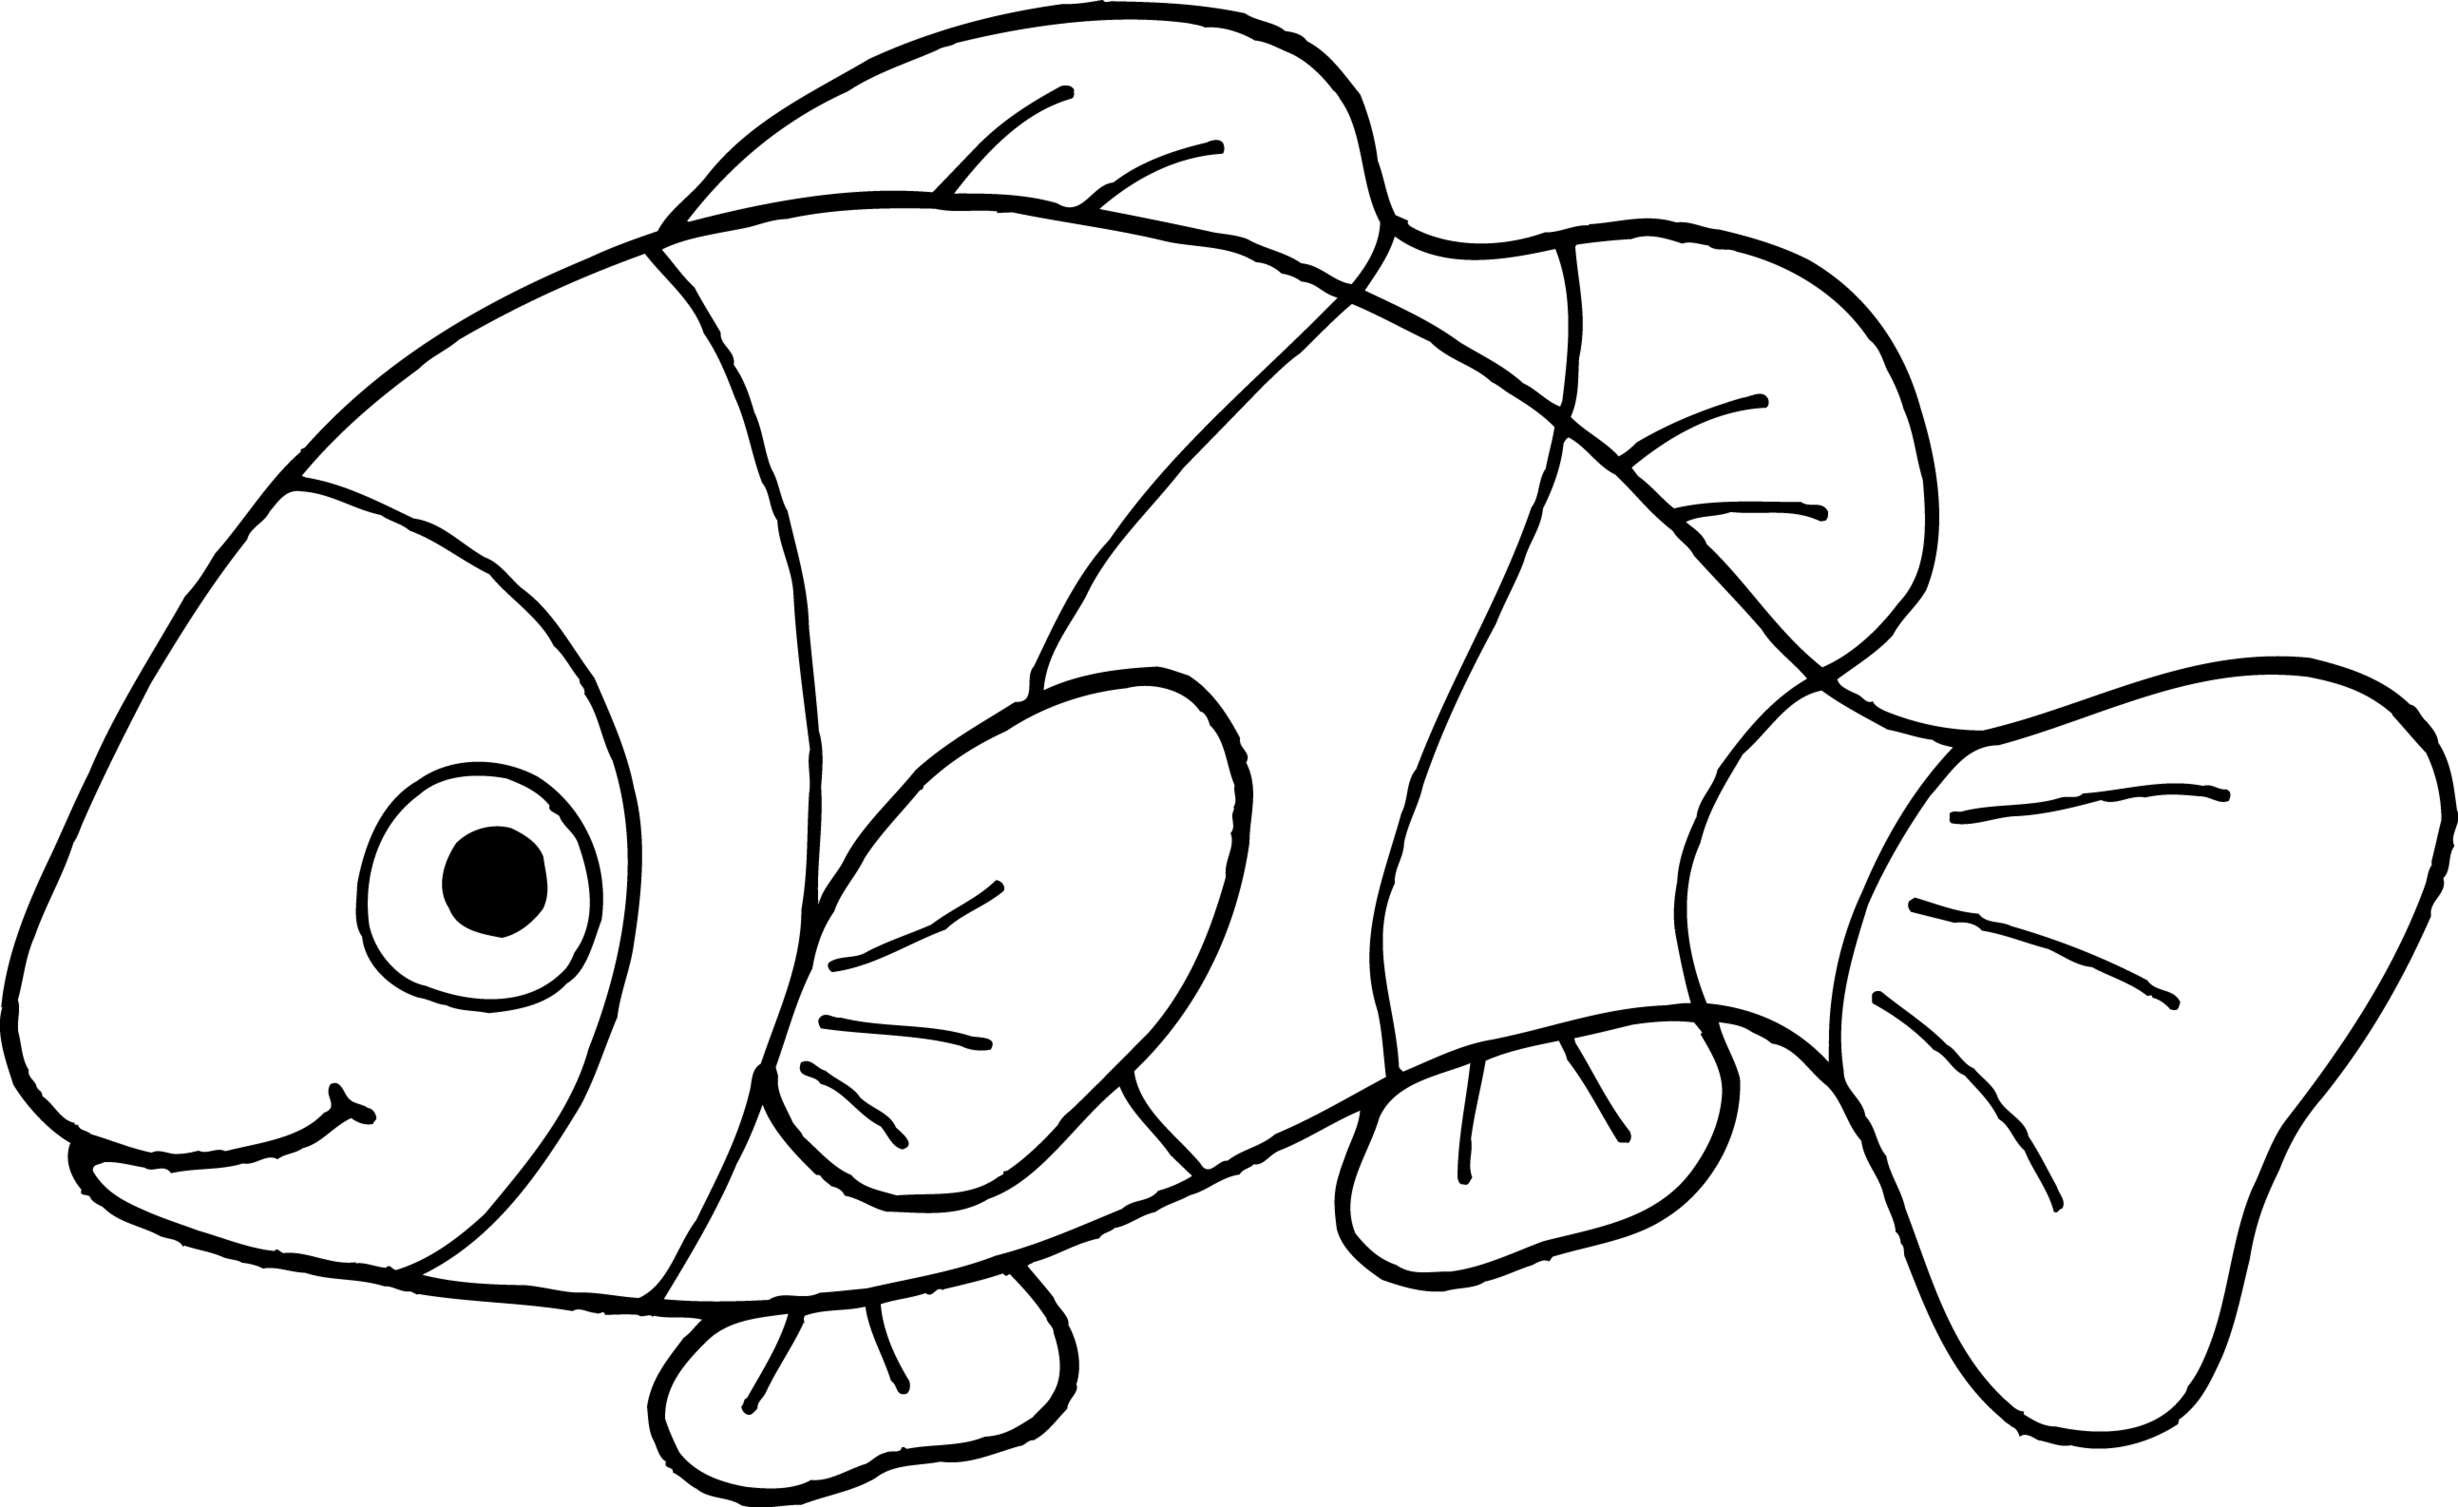 Fish free download best. Fishing clipart black and white